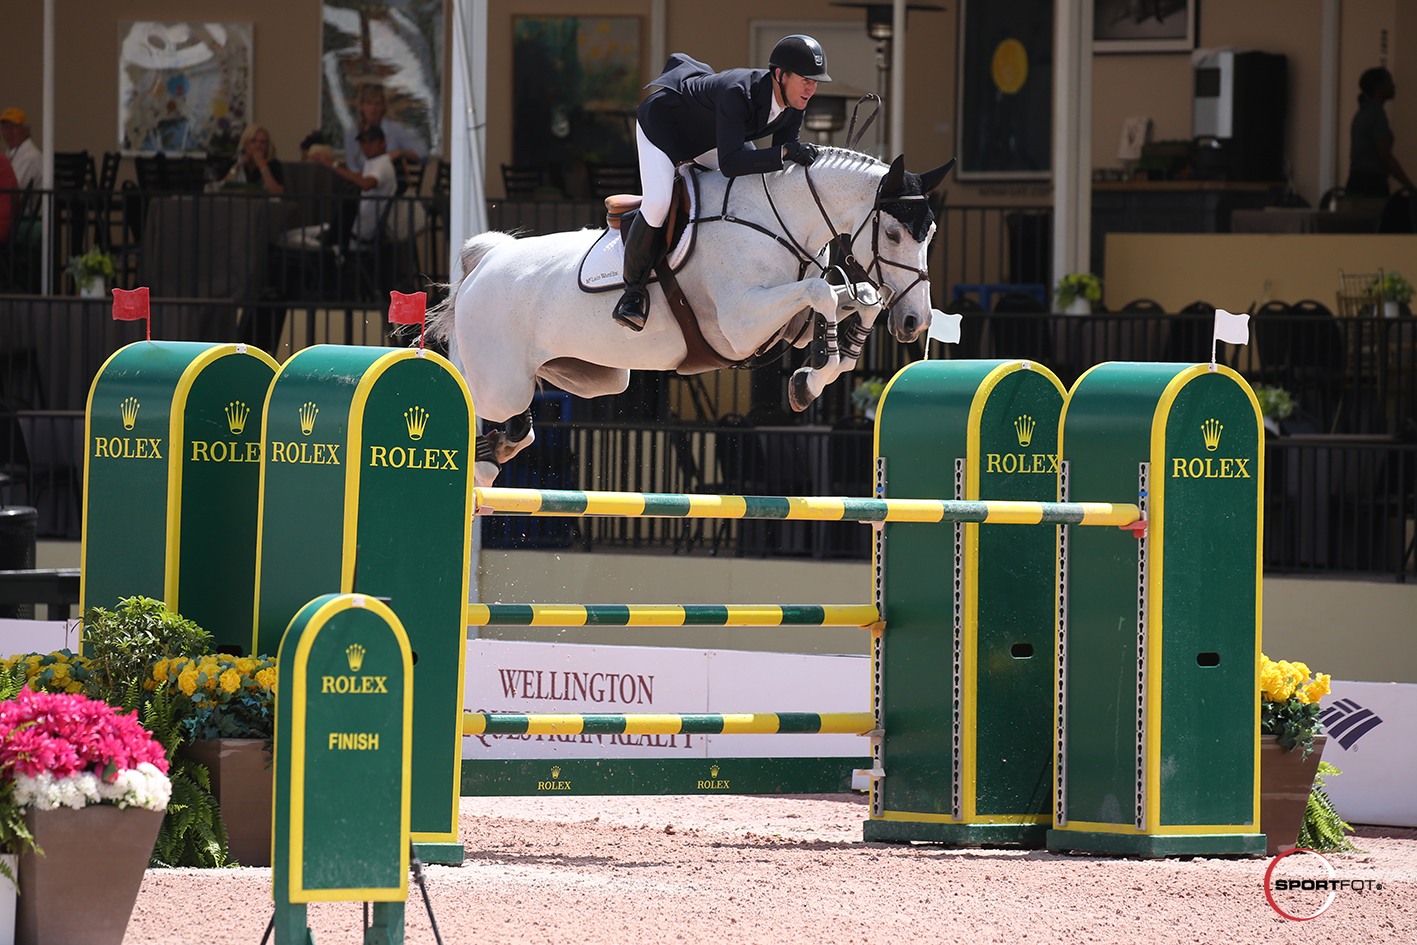 McLain Ward and Clinta 330_2129 Sportfot